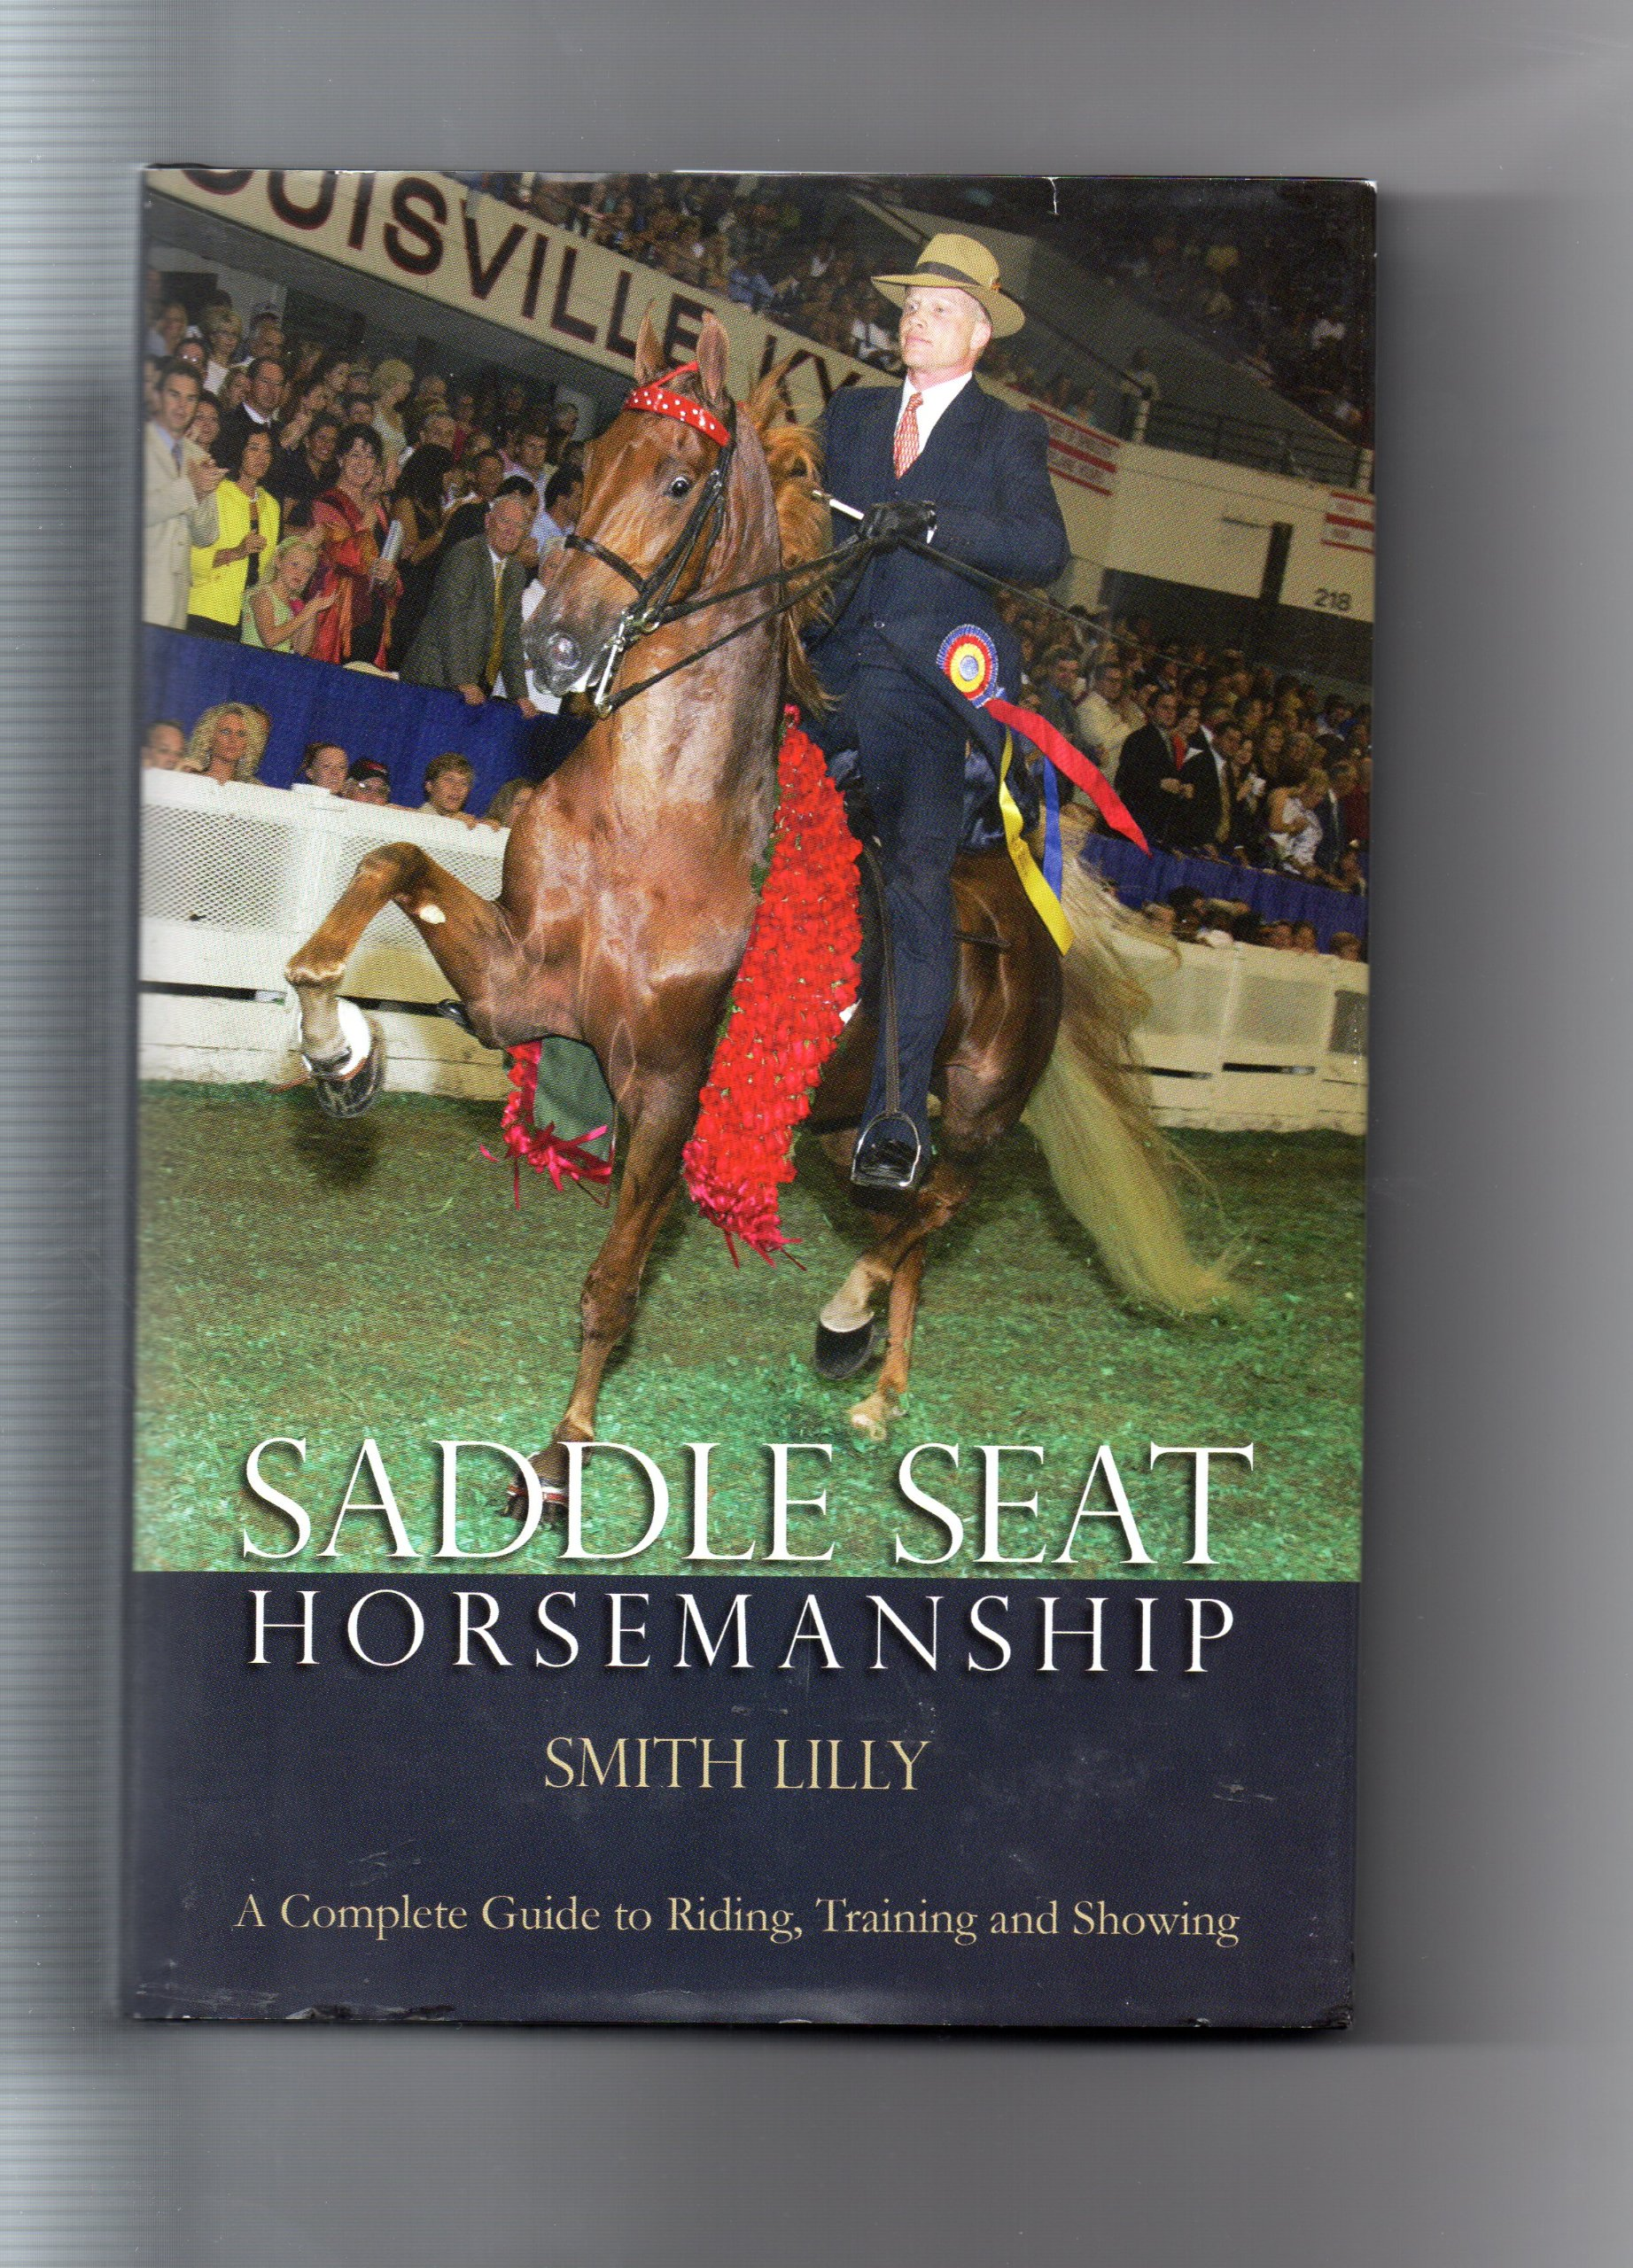 Saddle Seat Horsemanship Smith Lilly product image